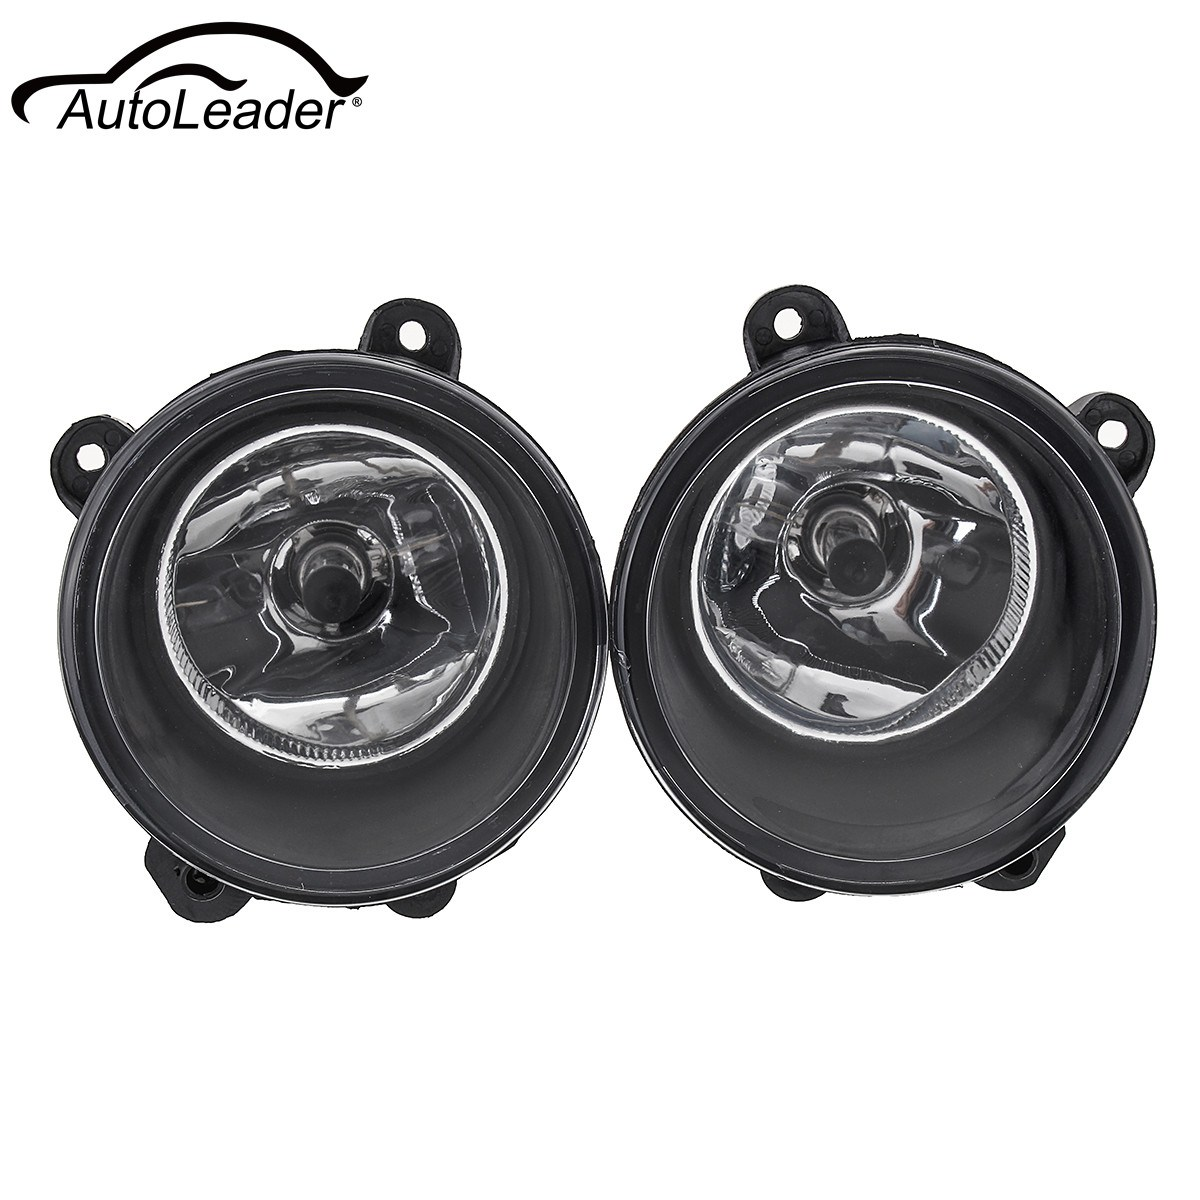 1Pair Car Fog Lights Clear Lamp H11 Bulbs Front Right+Left Fog Lamp For Land Rover Discovery 3 X2 2003-2009 bellows front right left 2nd generation air suspension spring for land rover range rover 2 1994 2002 p38 gerneration ii